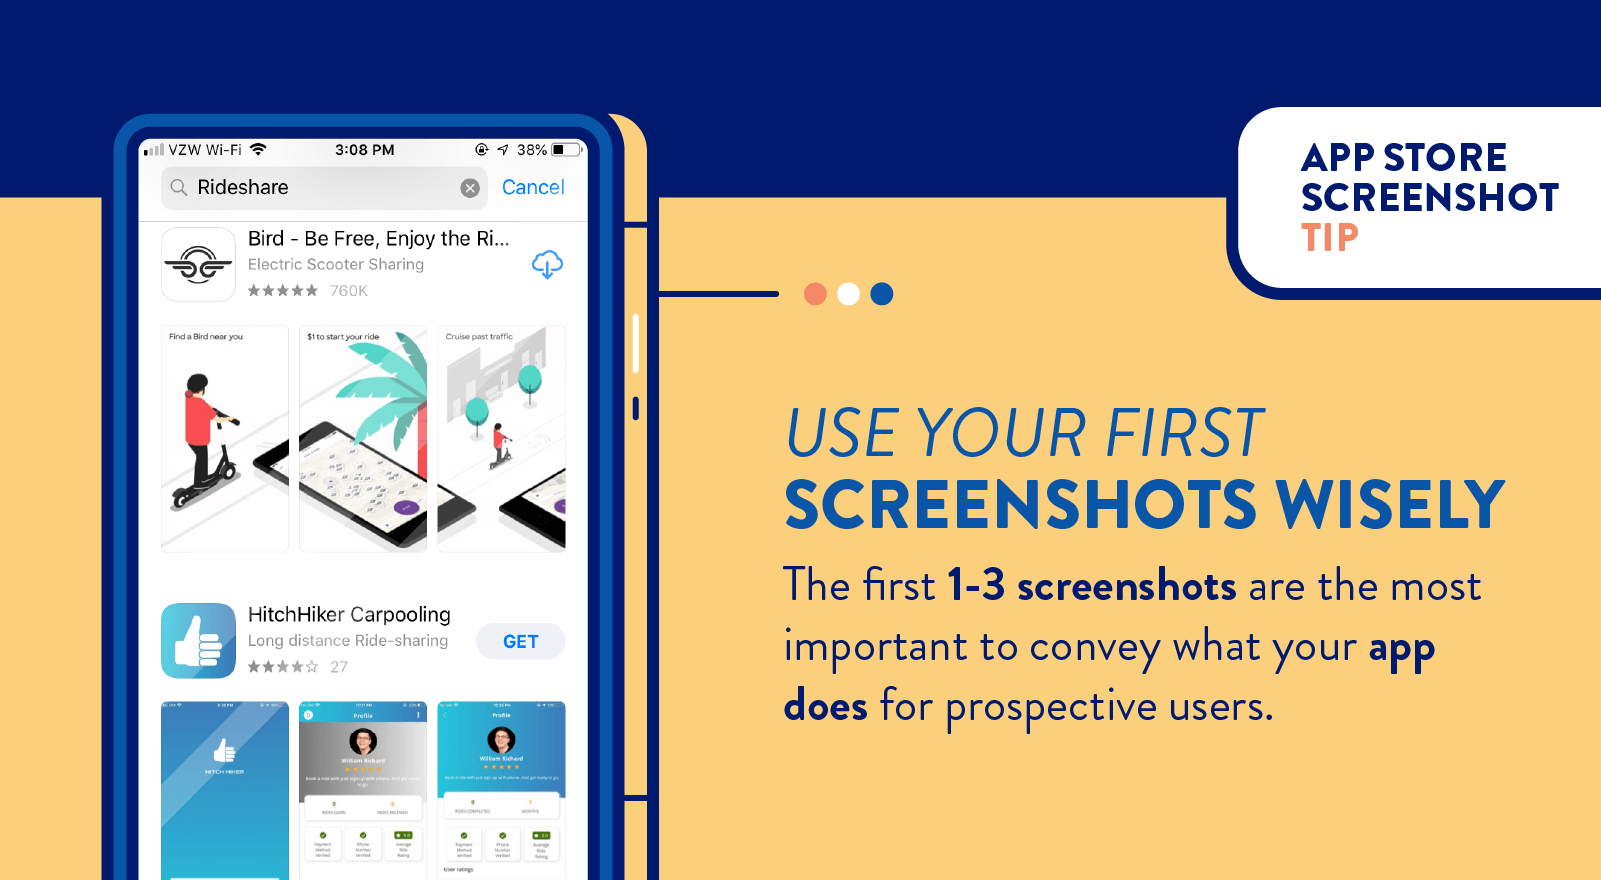 app store screenshots tip to use the first ones wisely